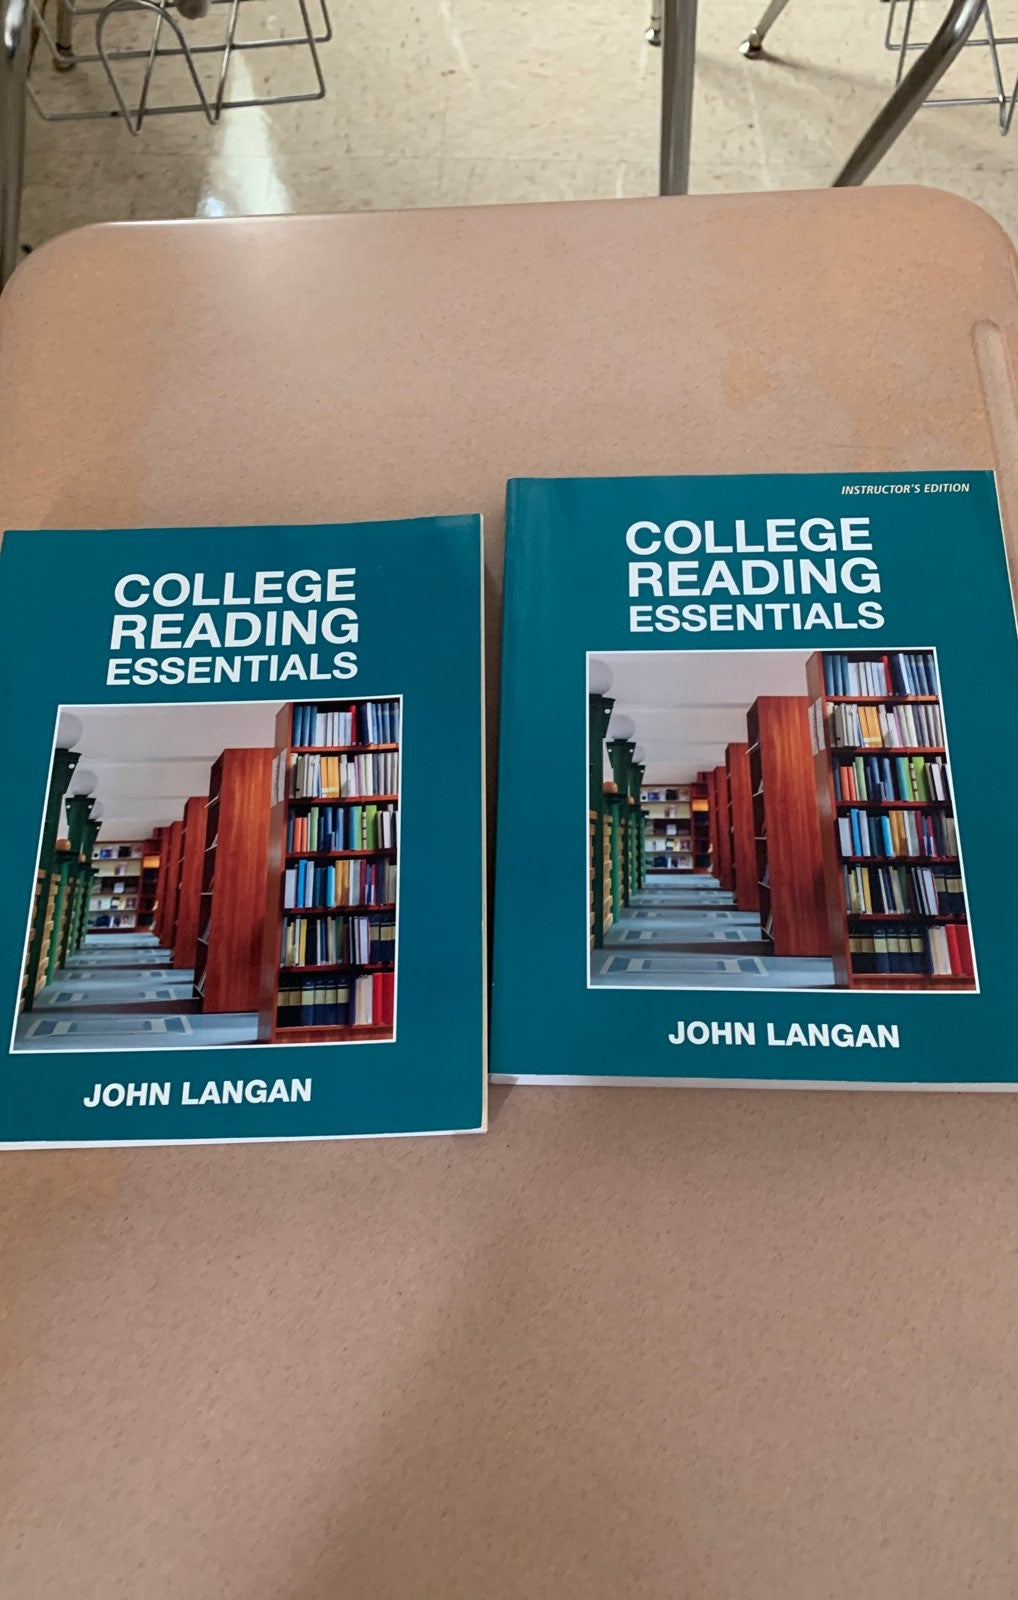 College Readiness Essentials John Langan